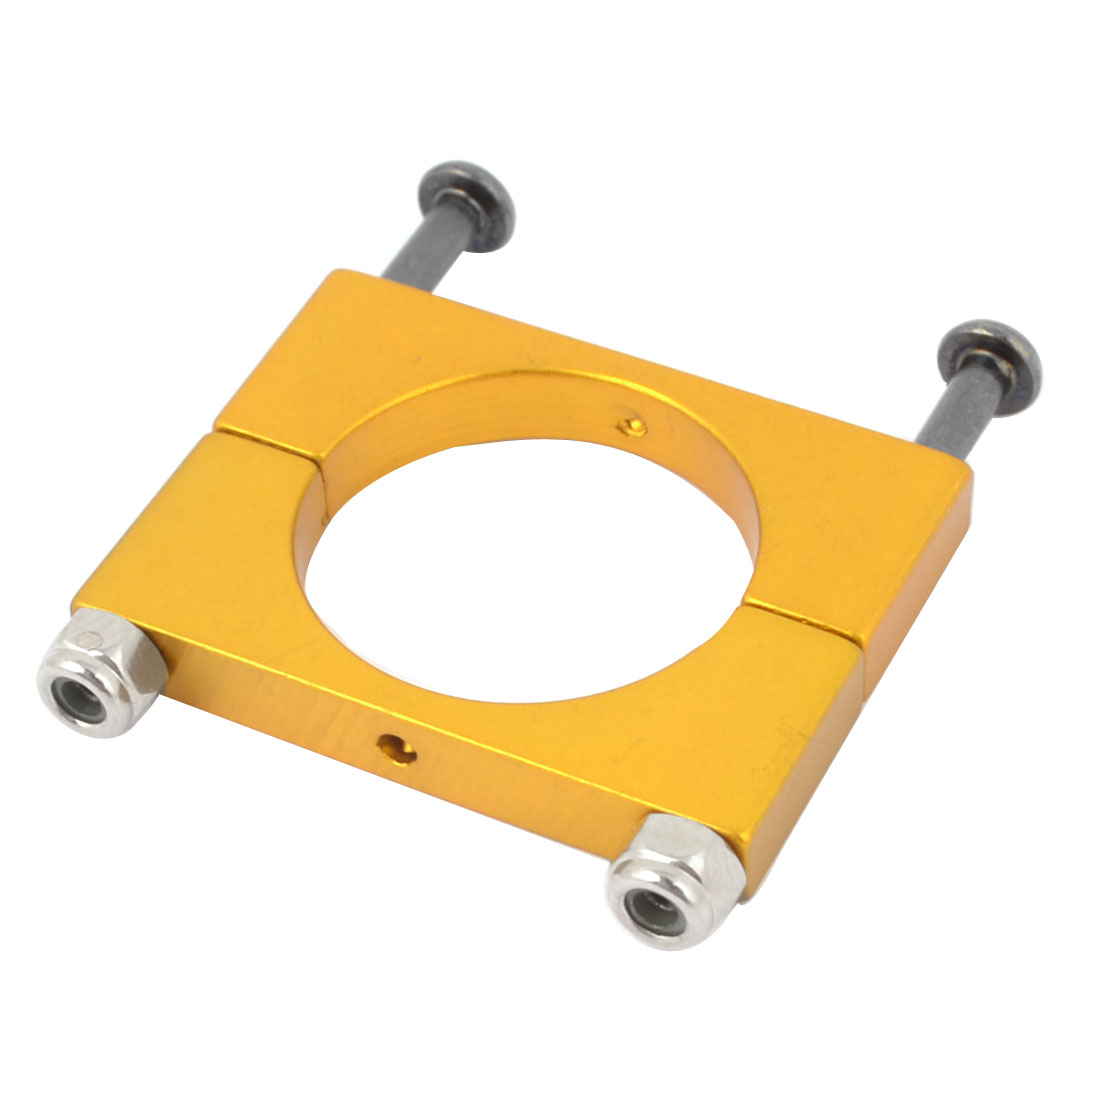 CNC Alloy 20mm Tube Boom Mount Motor Clamp for DIY Quadcopter Yellow